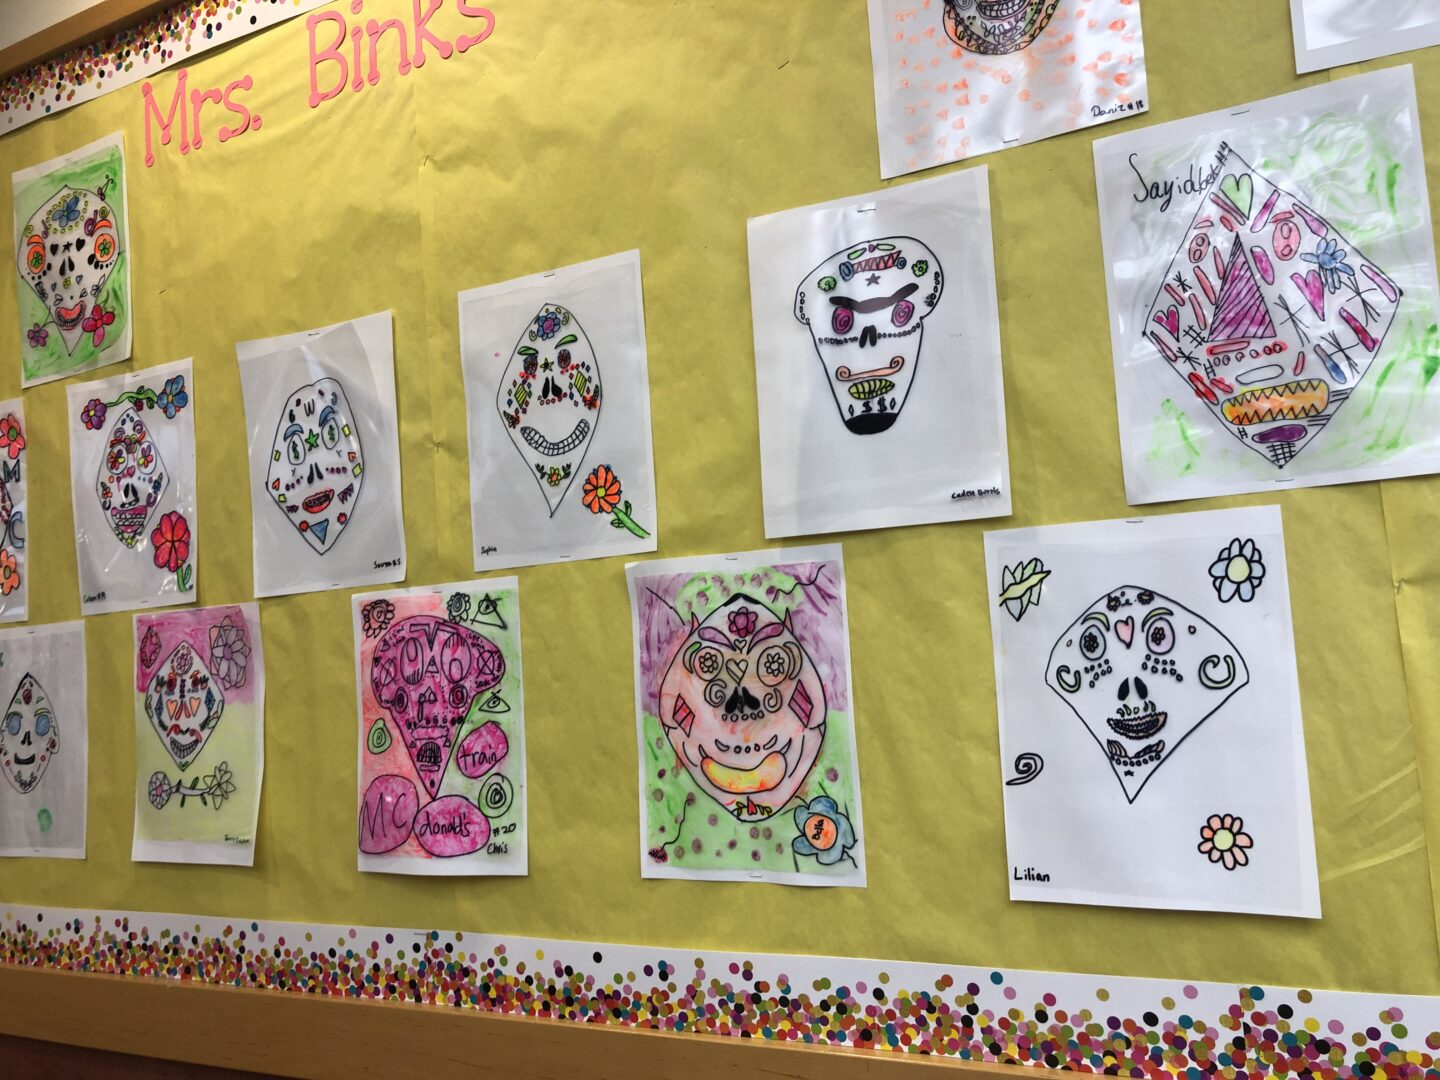 Frida Kahlo inspired Reserve Sugar Skulls created by students from Grade 5. Follow @How2playtoday for more exciting activities.